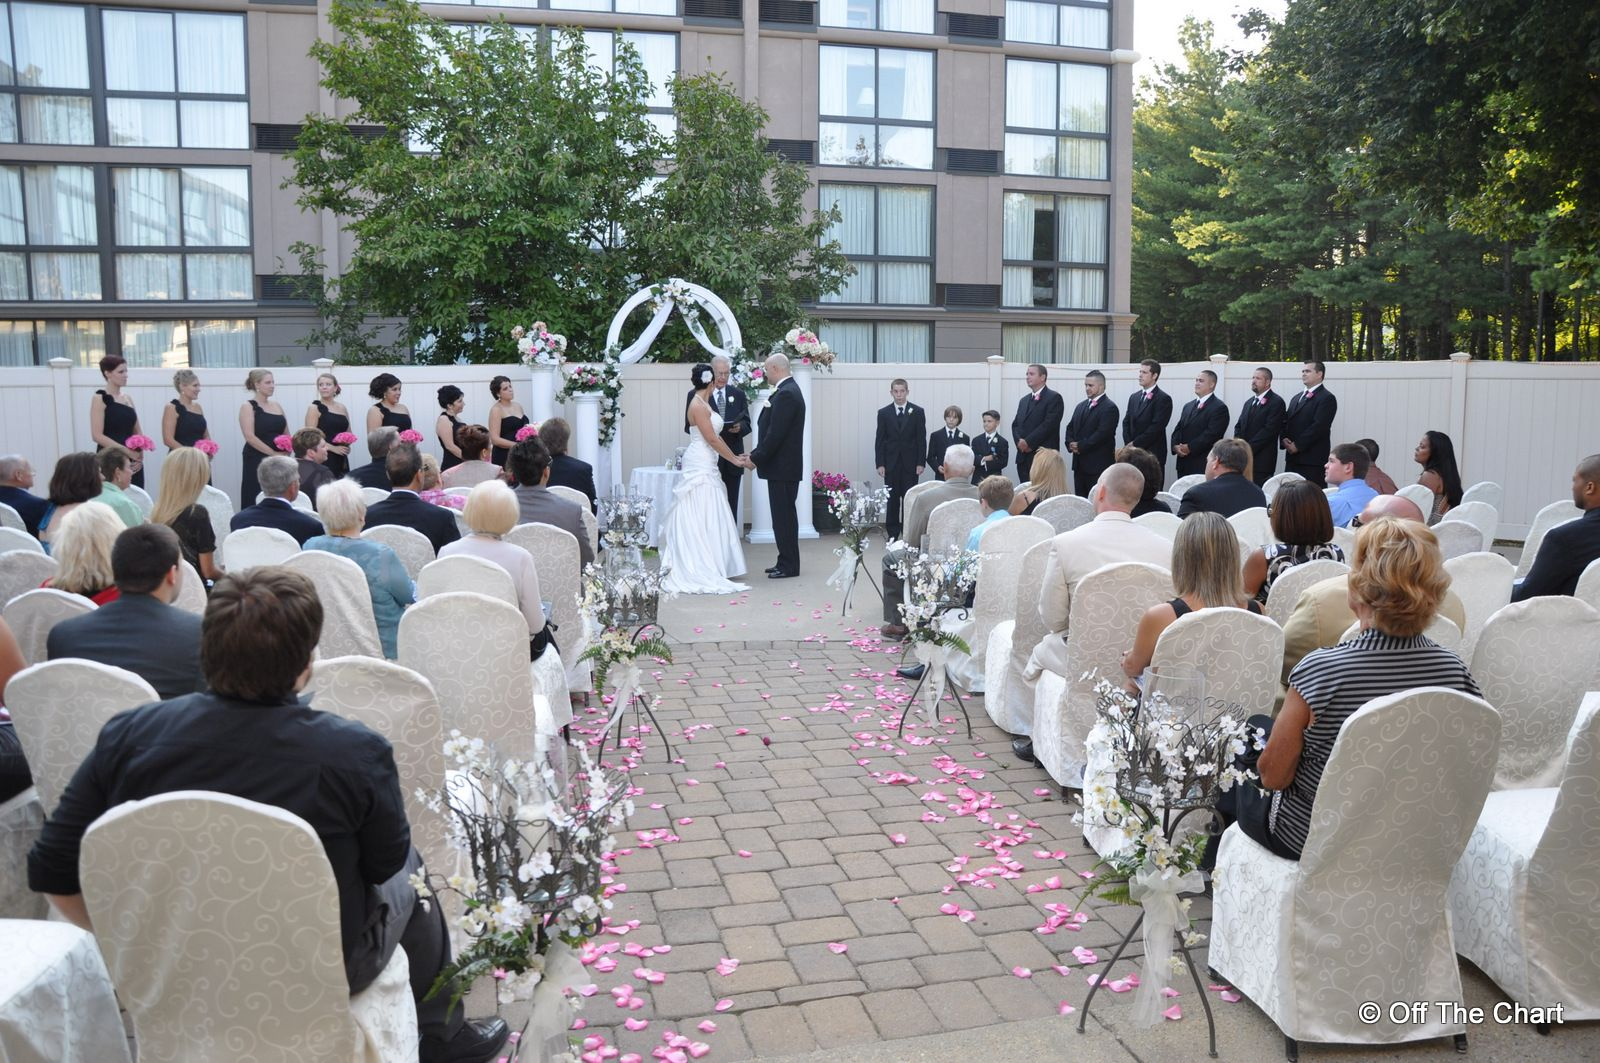 Outdoor Ceremony Area At The Holiday Inn Of Toms River, NJ